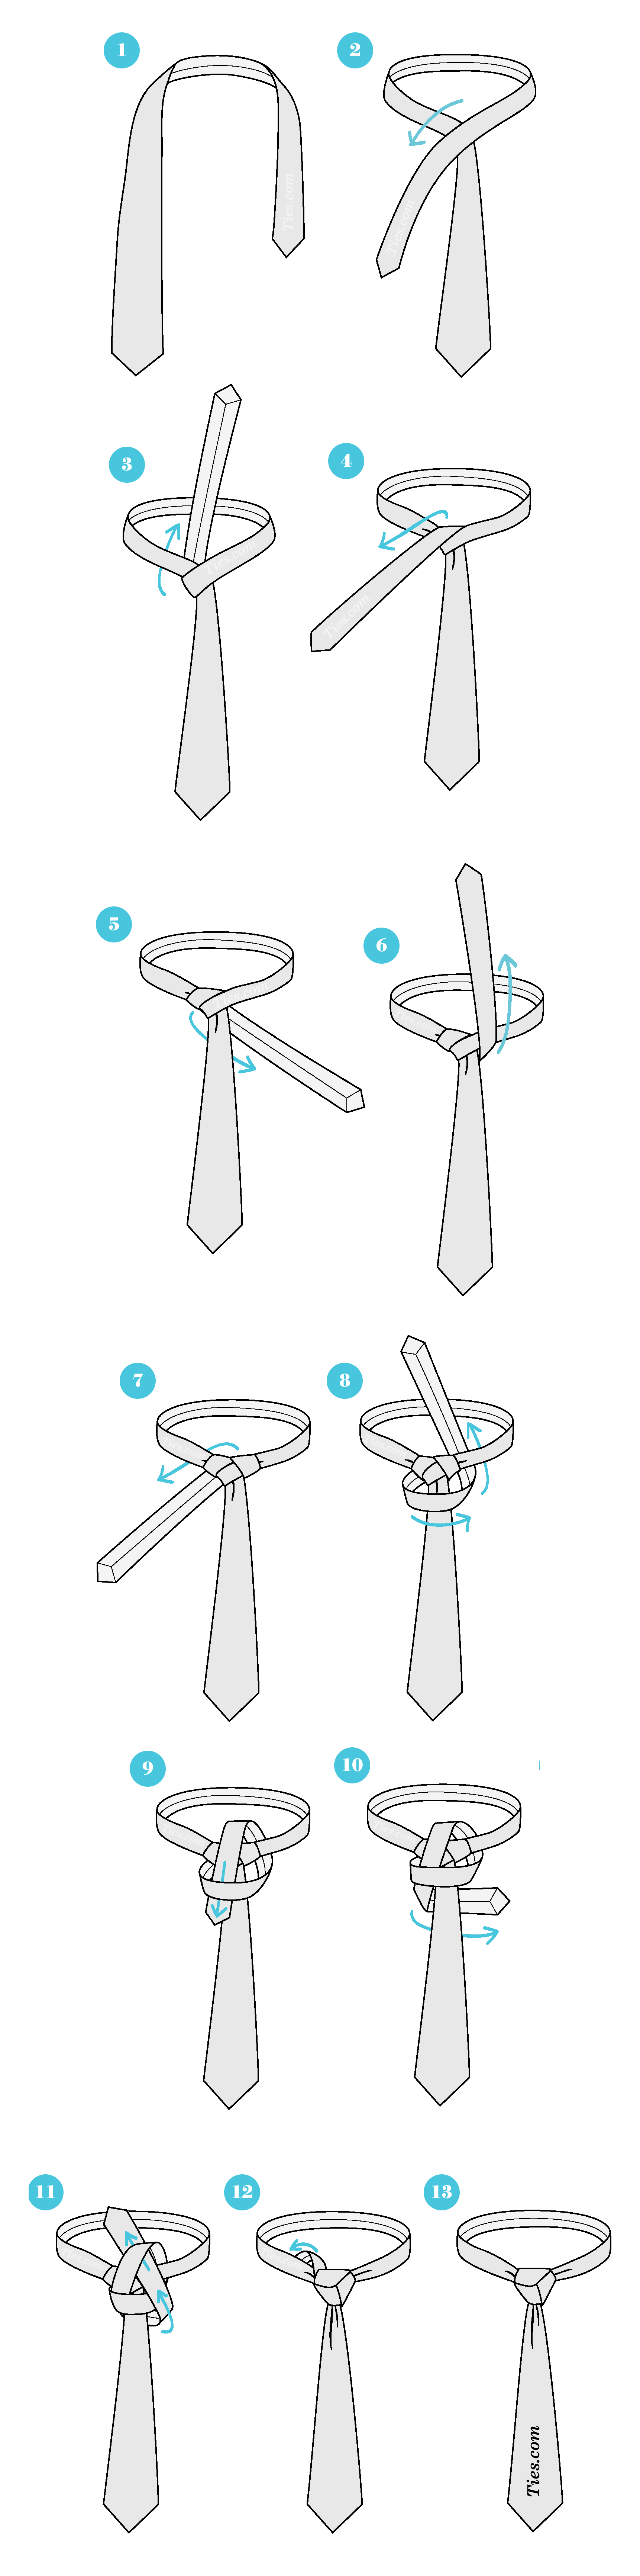 instructions on how to tie a tie